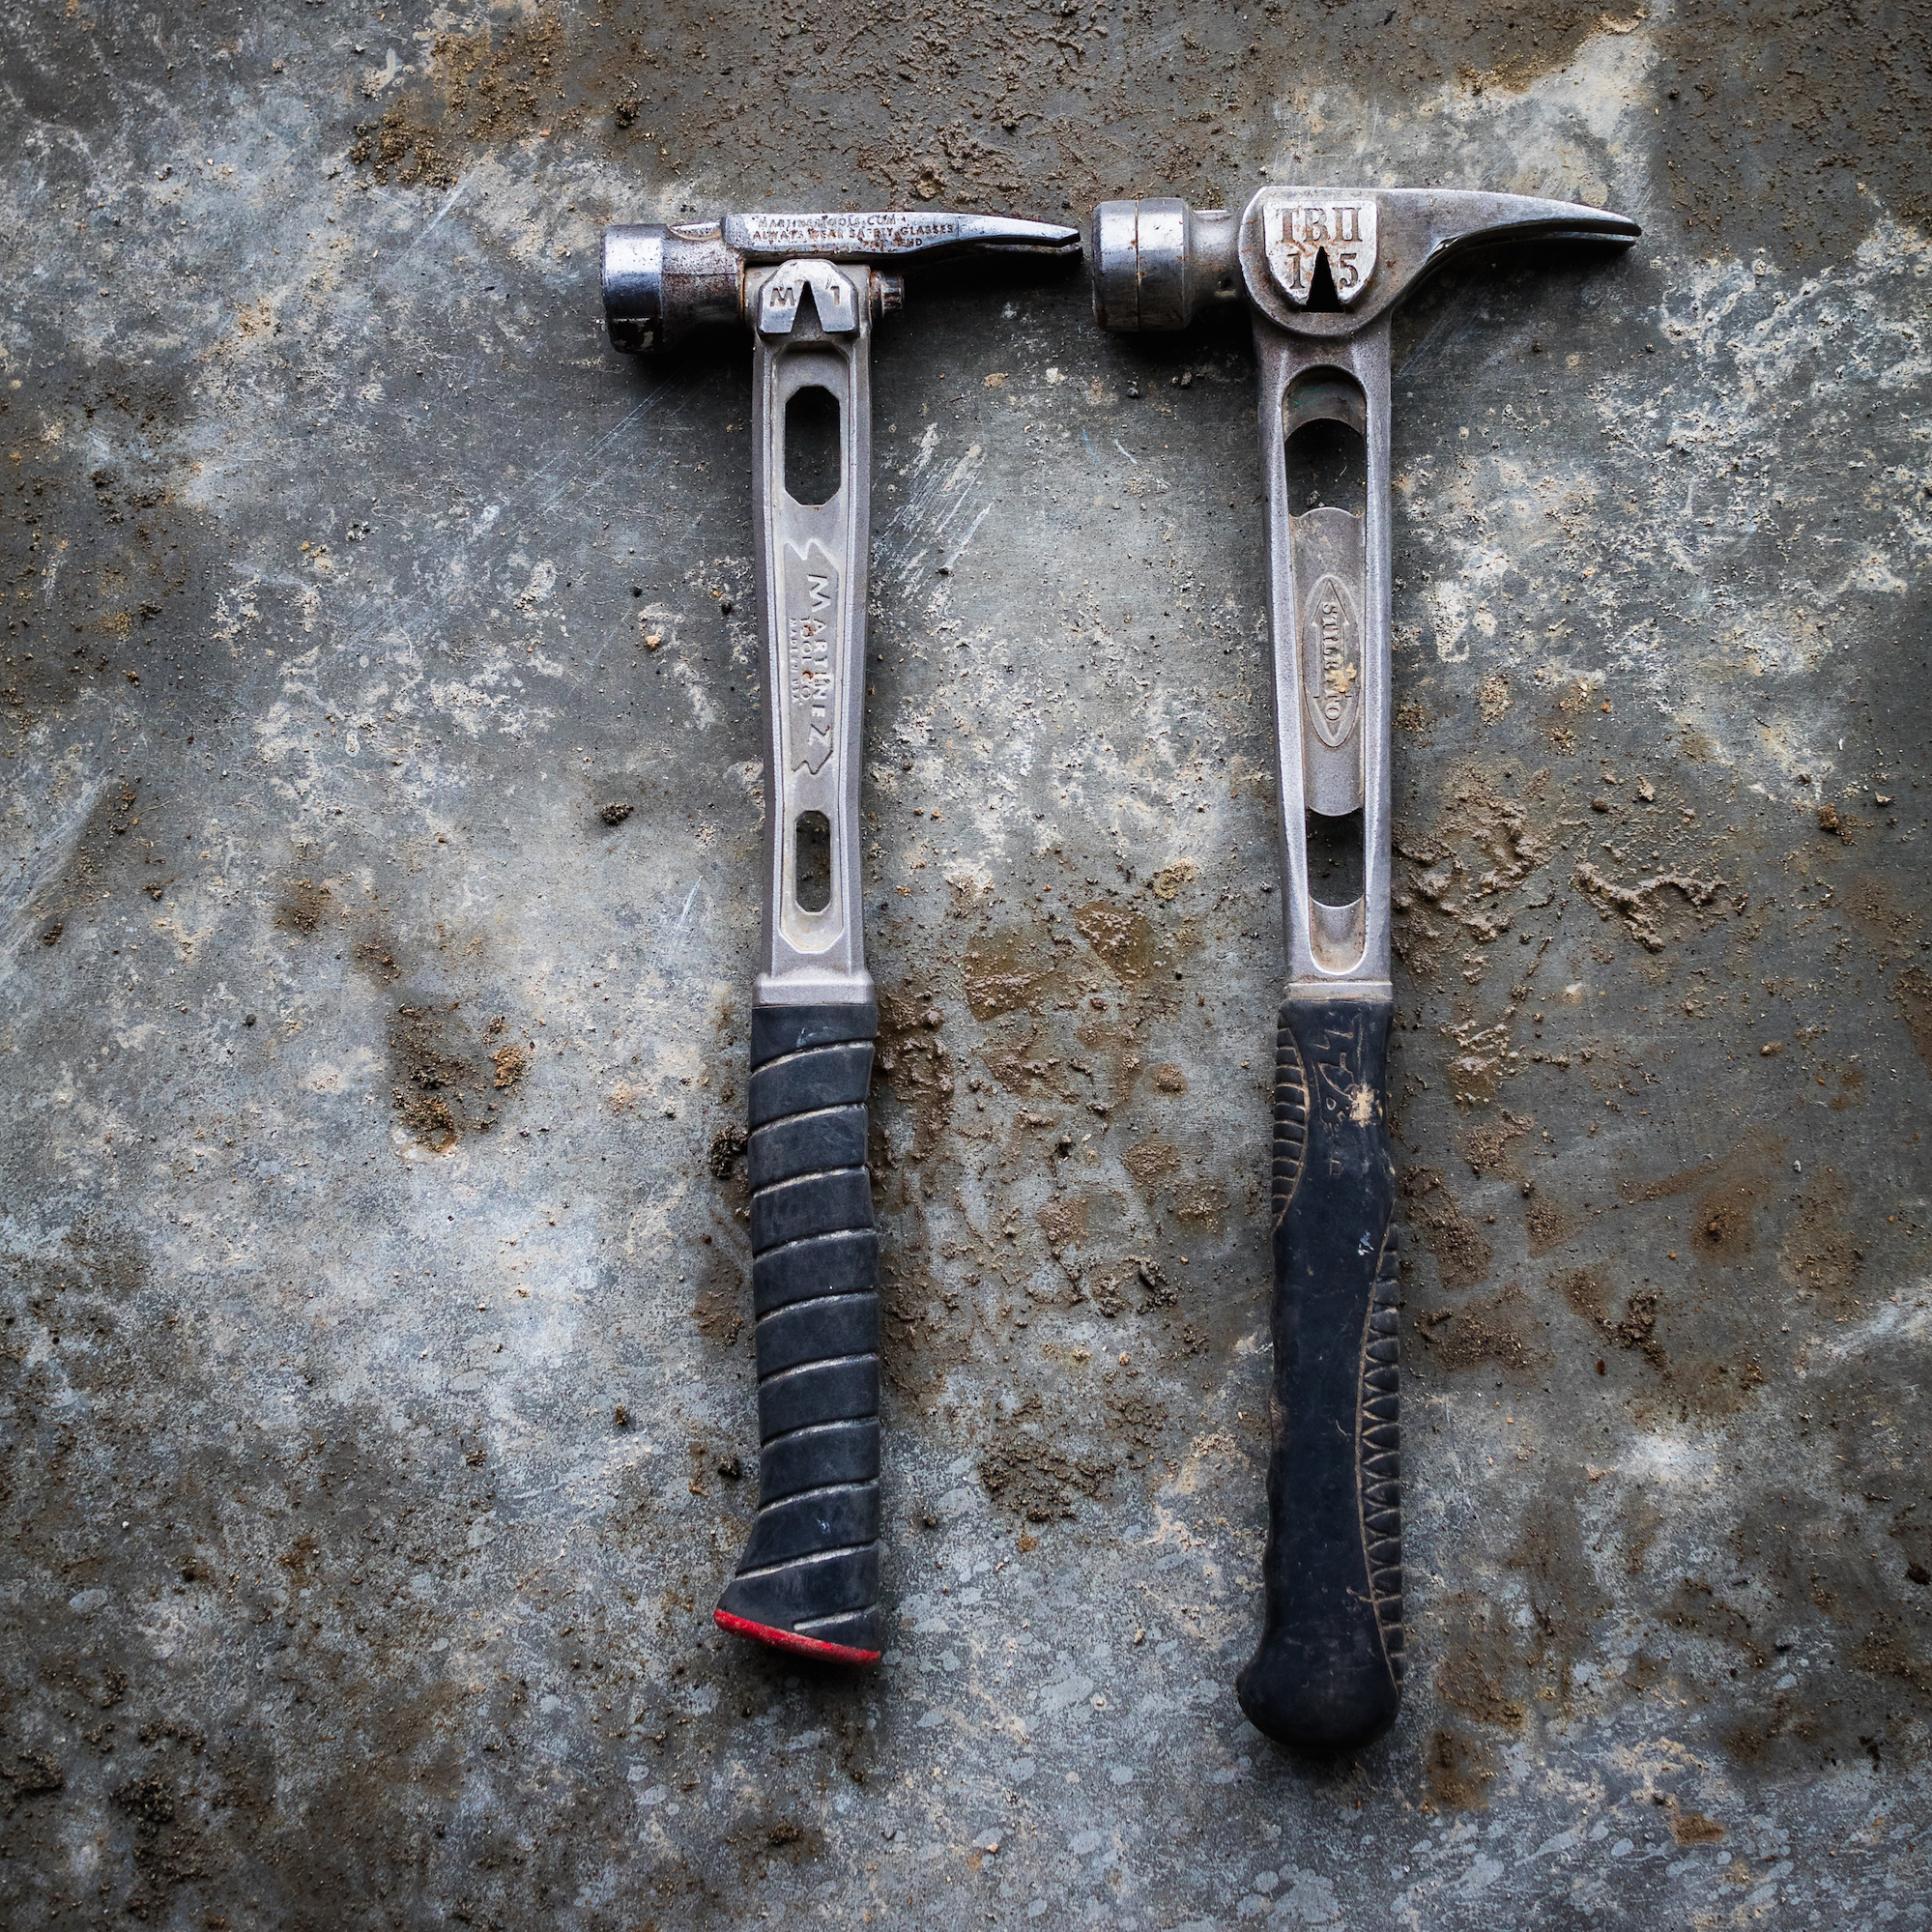 Field Tested The Martinez M1 Titanium Handled Hammers